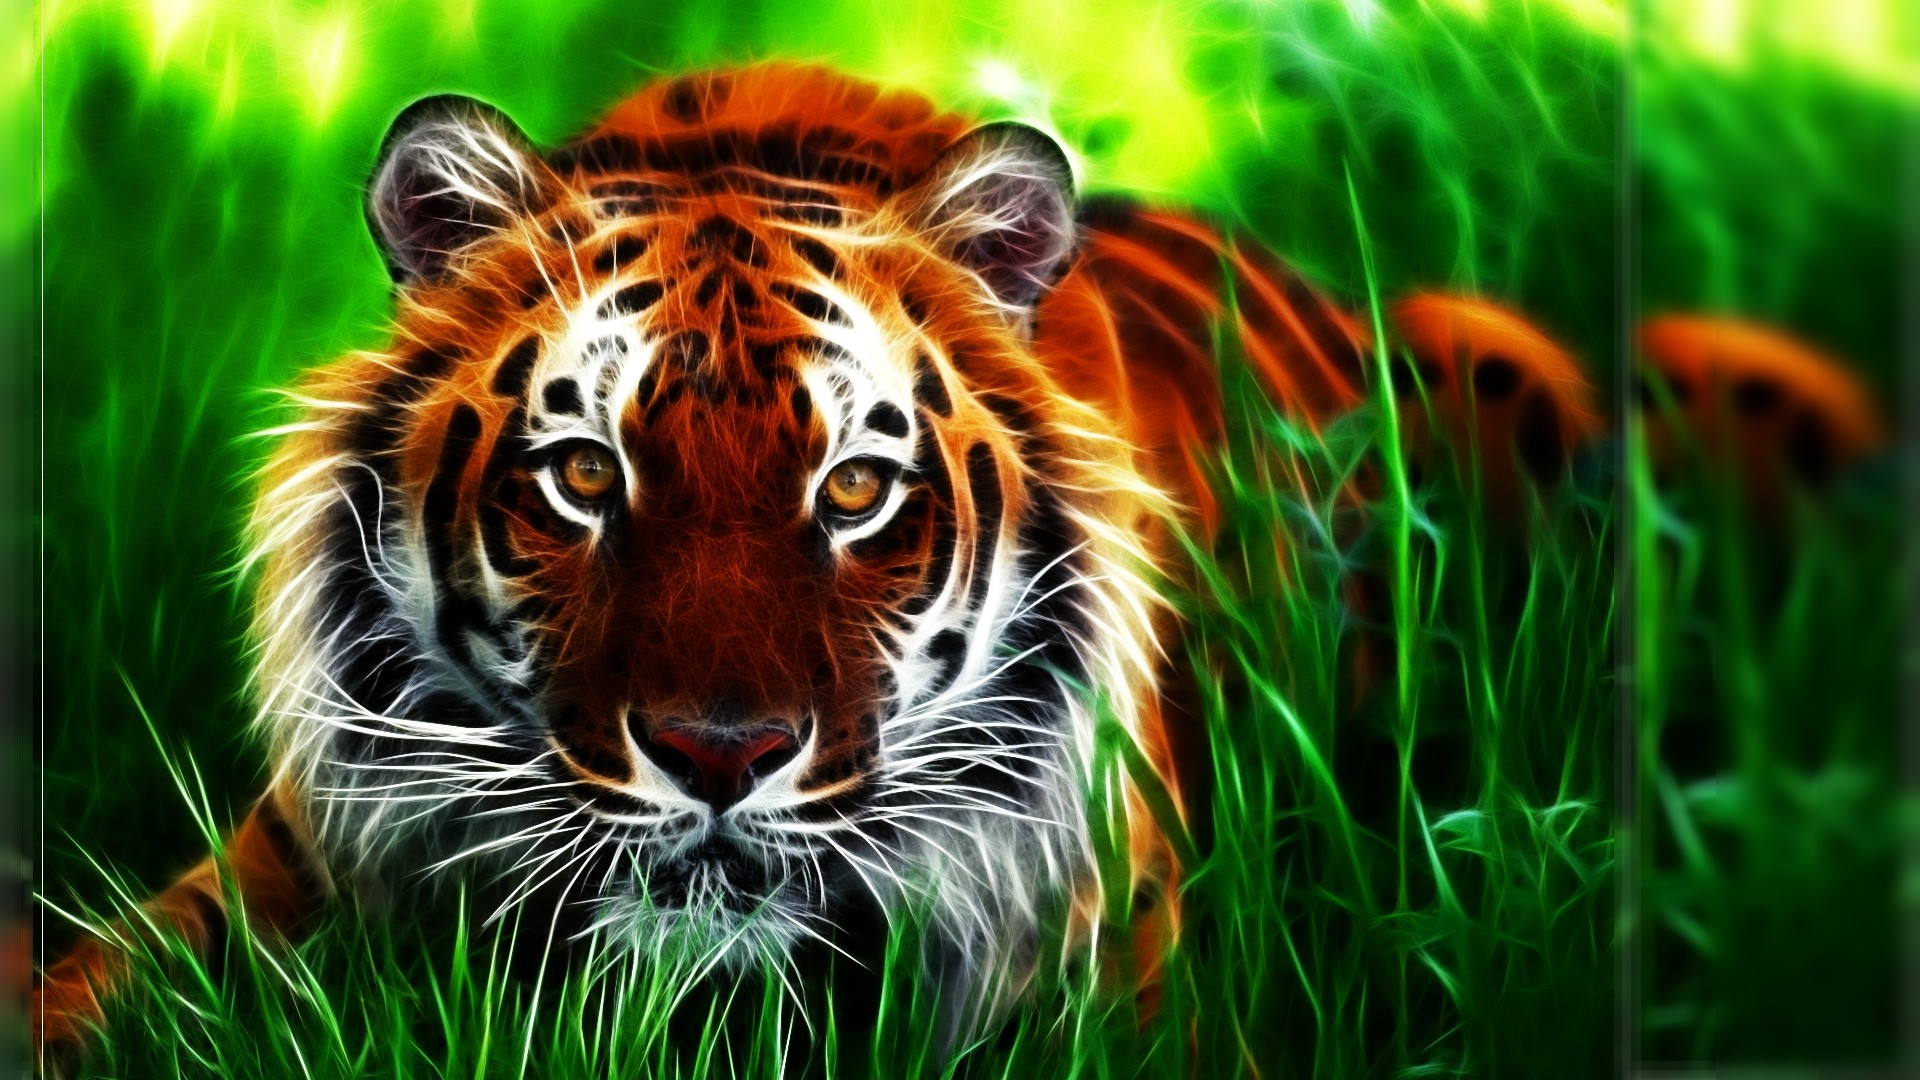 1920x1080px cool tiger backgrounds - wallpapersafari